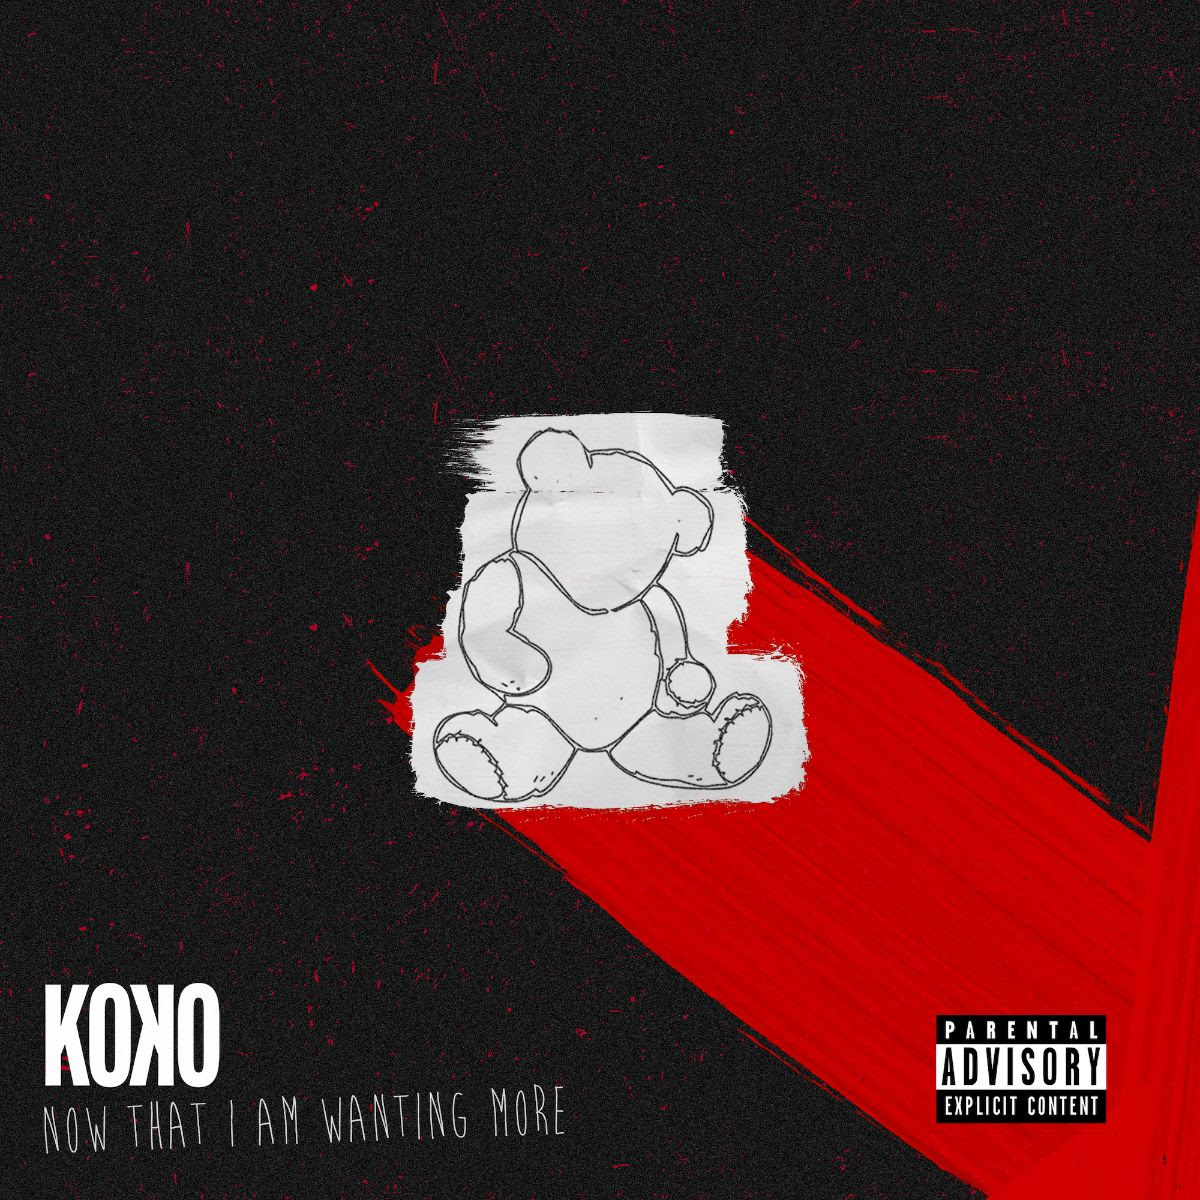 KOKO - Now That I'm Wanting More